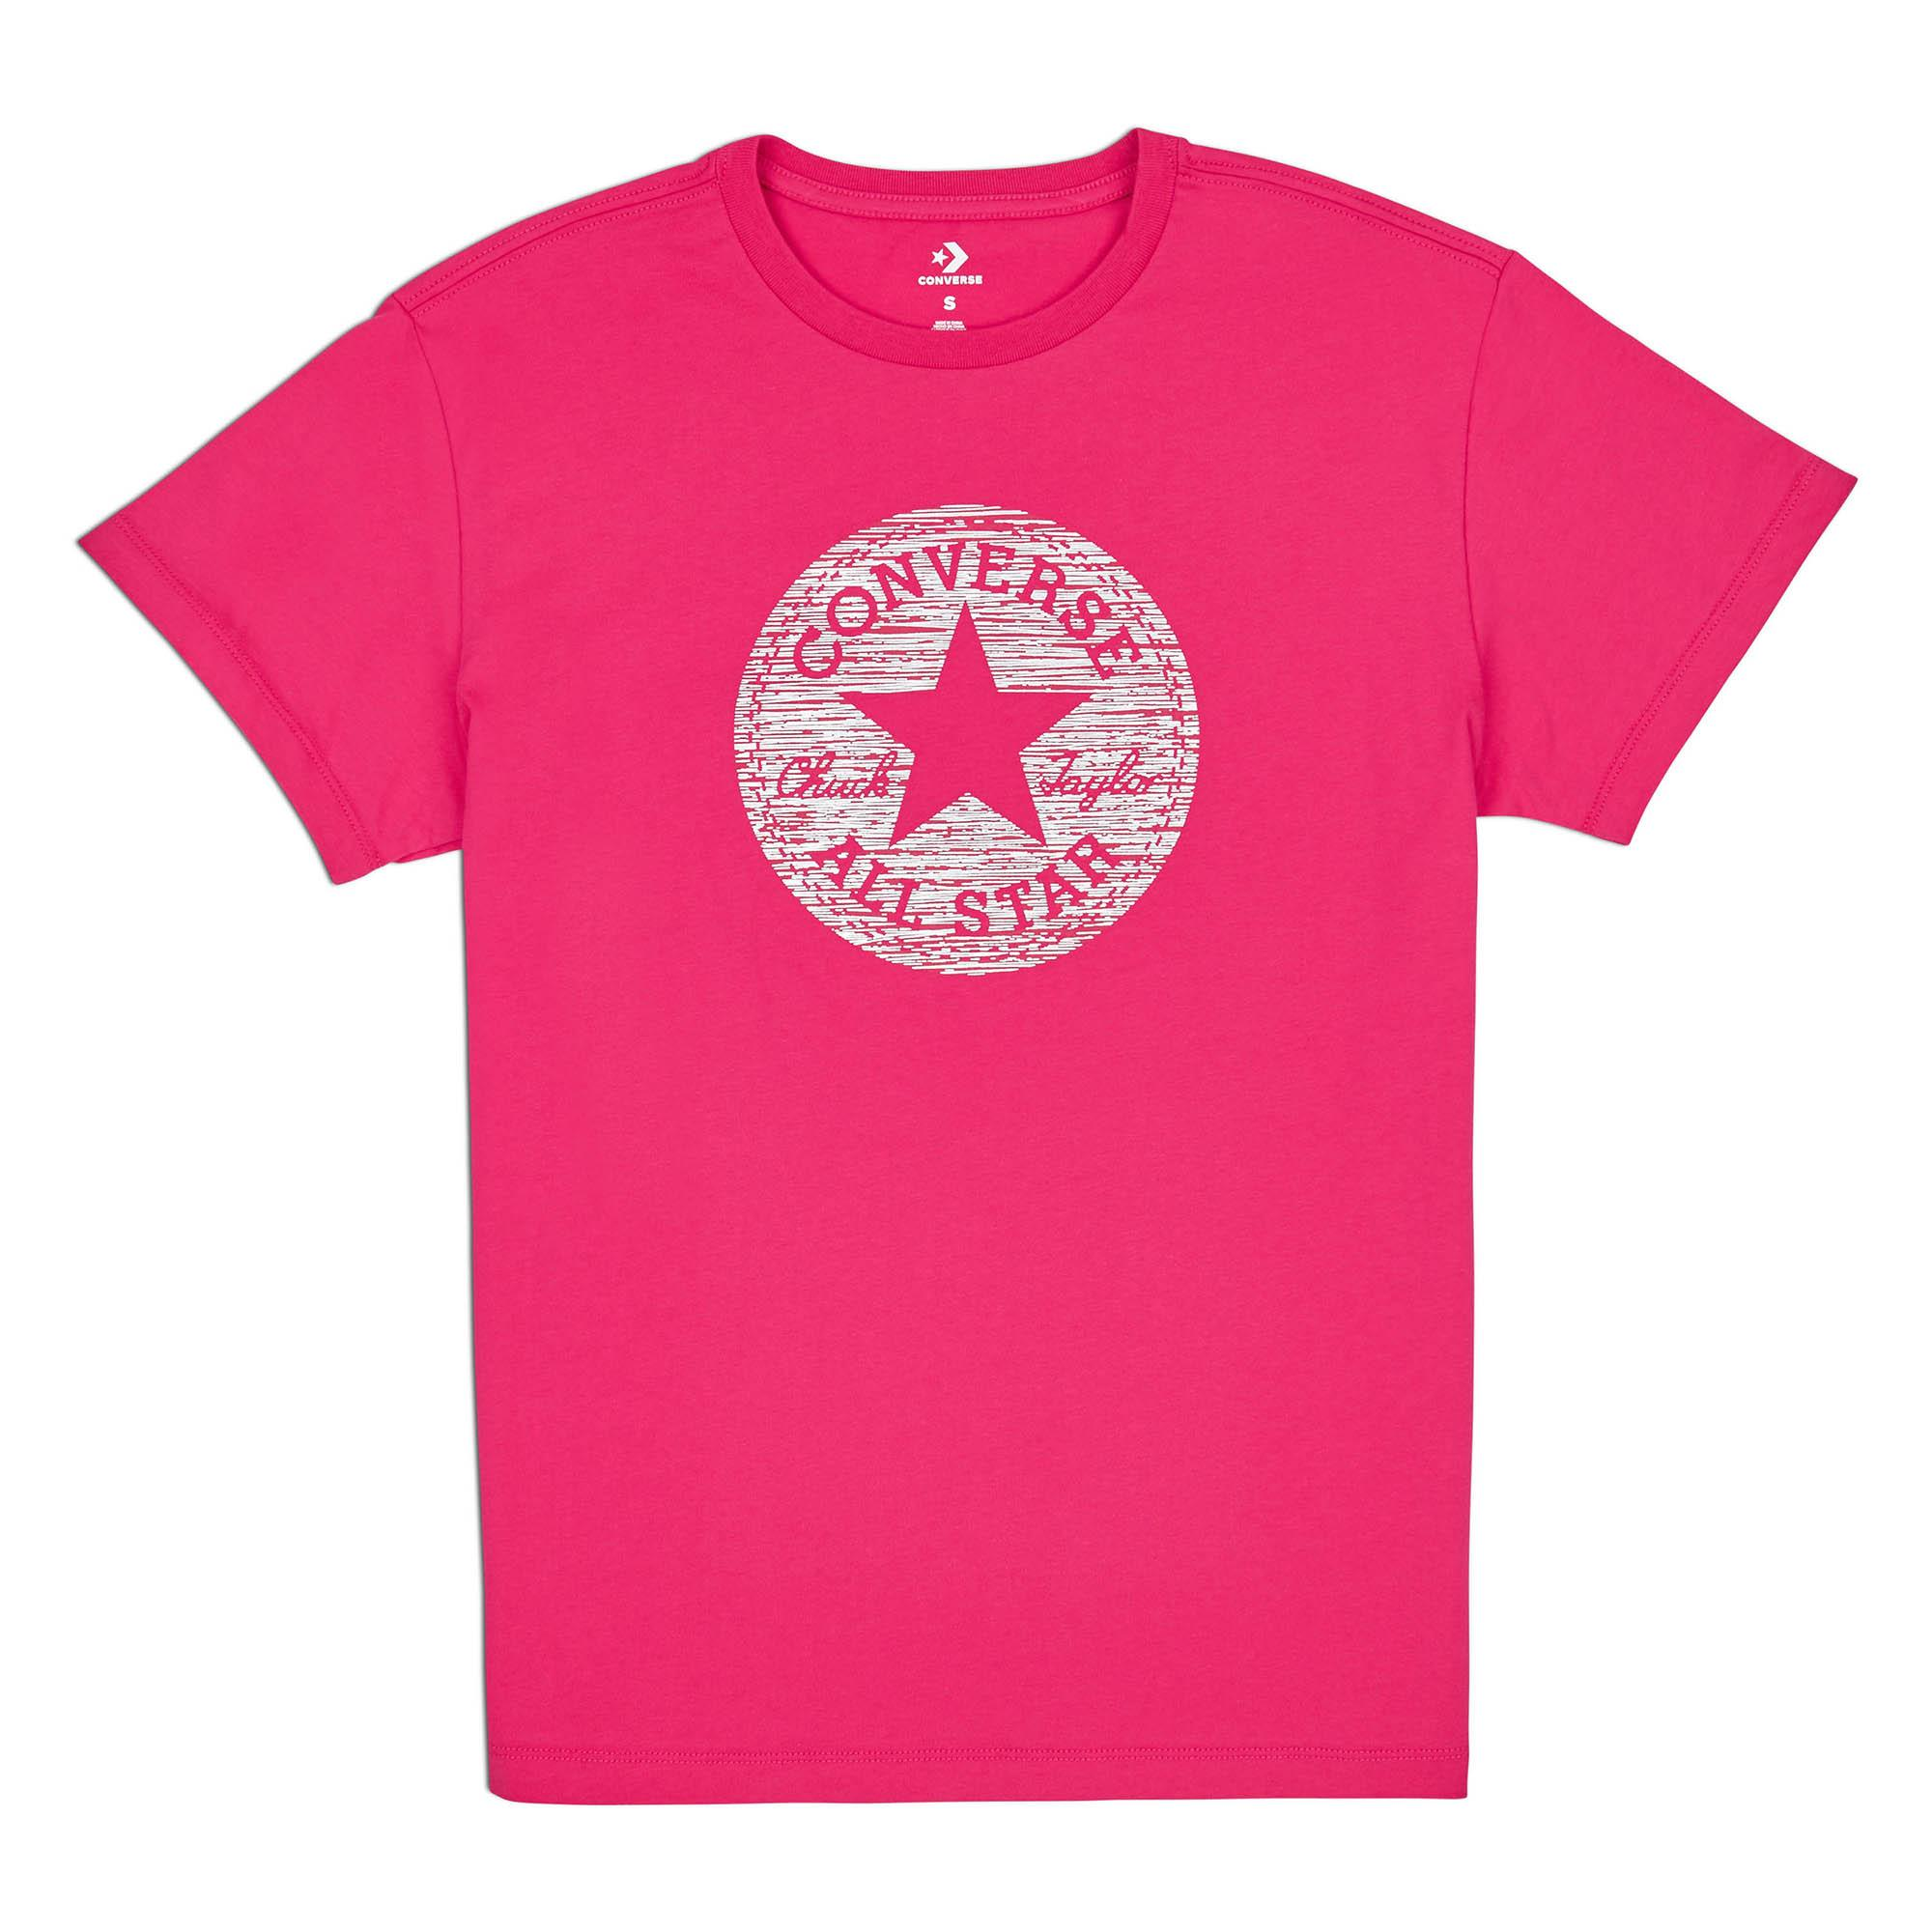 bd65900b4ccf  SALE  CONVERSE PRECIOUS METAL CHUCK PATCH EASY CREW TEE - PINK POP -  10007057